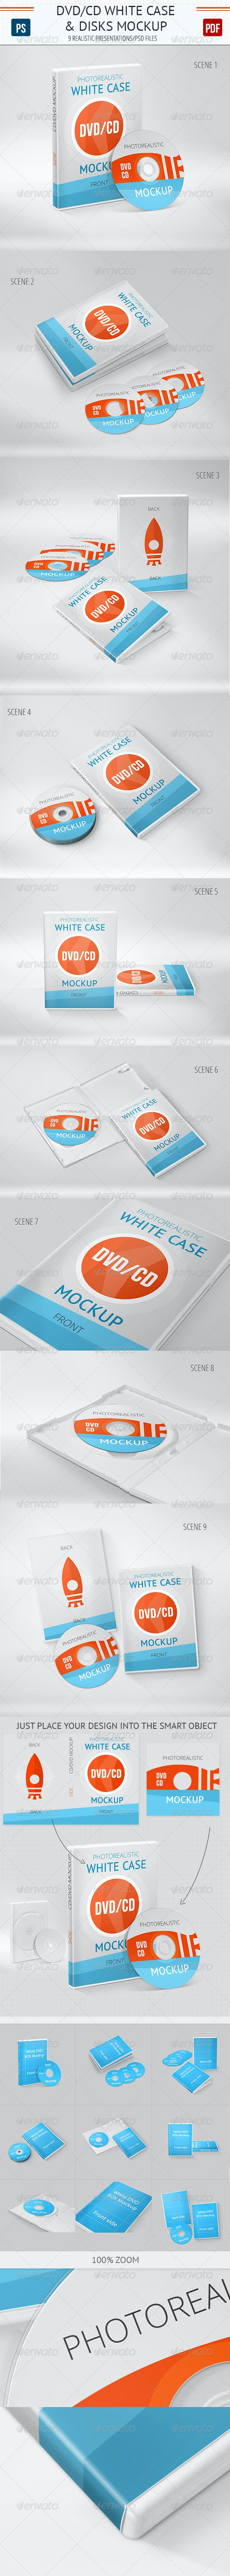 Realistic DVD/CD Mockup White Case & Disks  - Packaging Product Mock-Ups